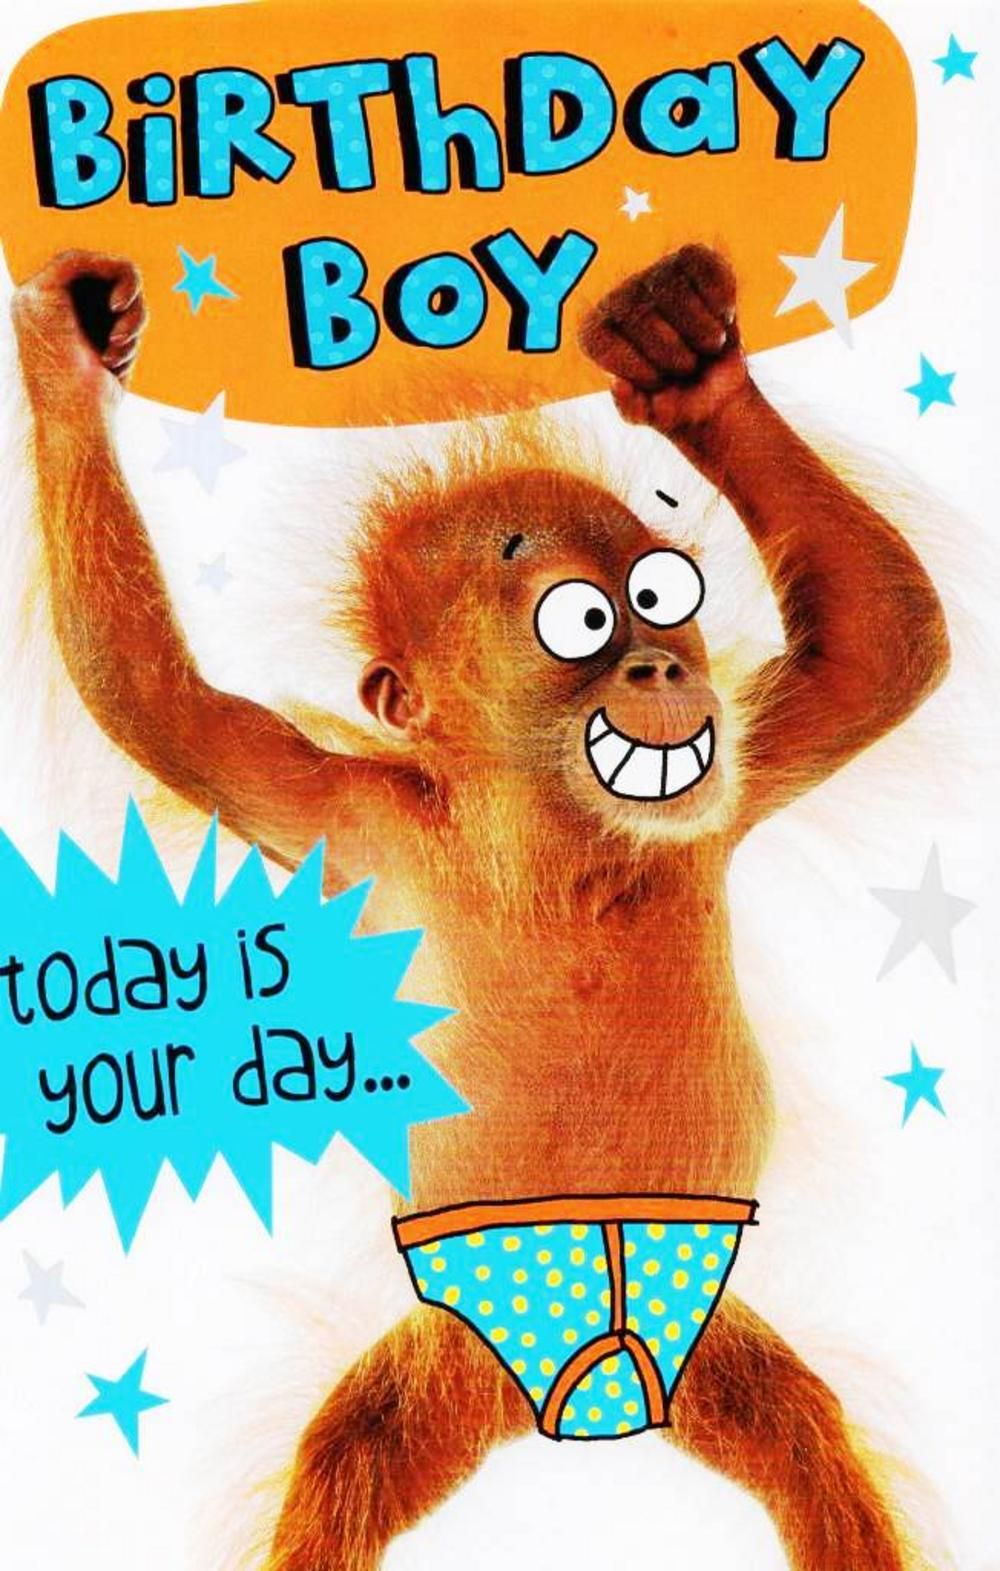 Birthday Boy today is your day to go Bananas – Birthday Boy Cards